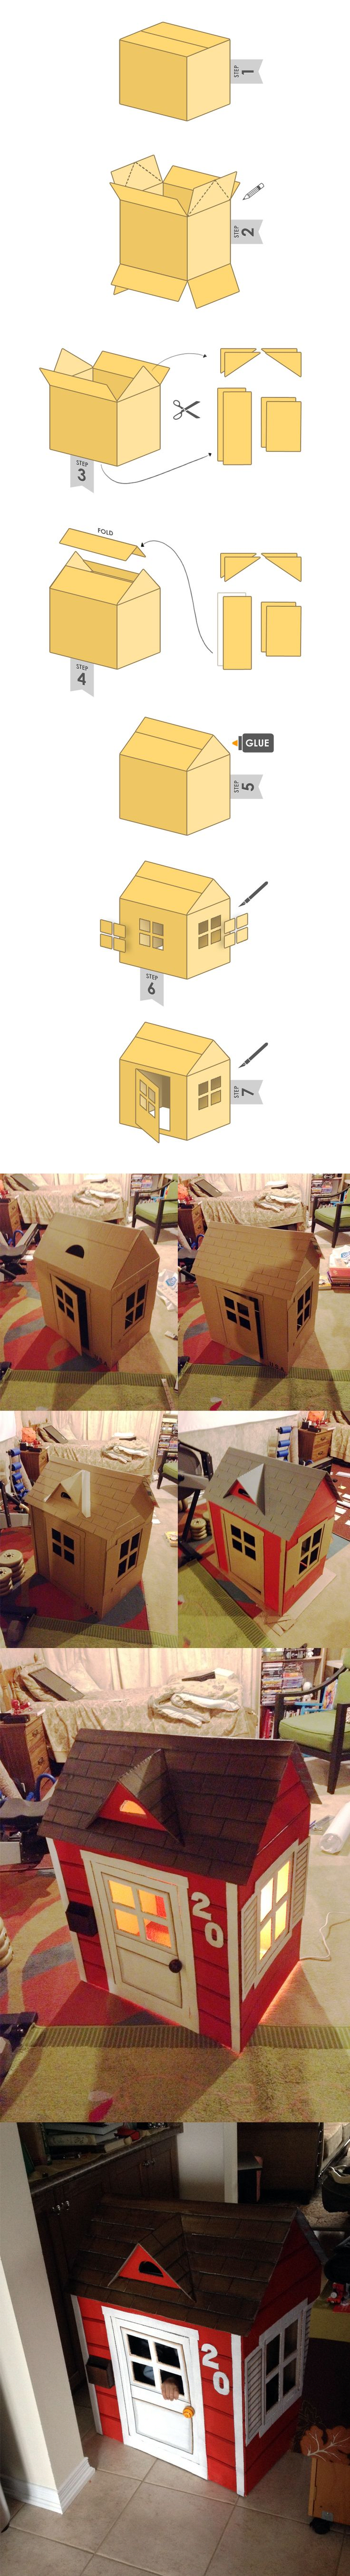 簡単なダンボールハウスの作り方。Cardboard box house. Step 0: Buy something that comes in a giant box. Proceed to Step 1.